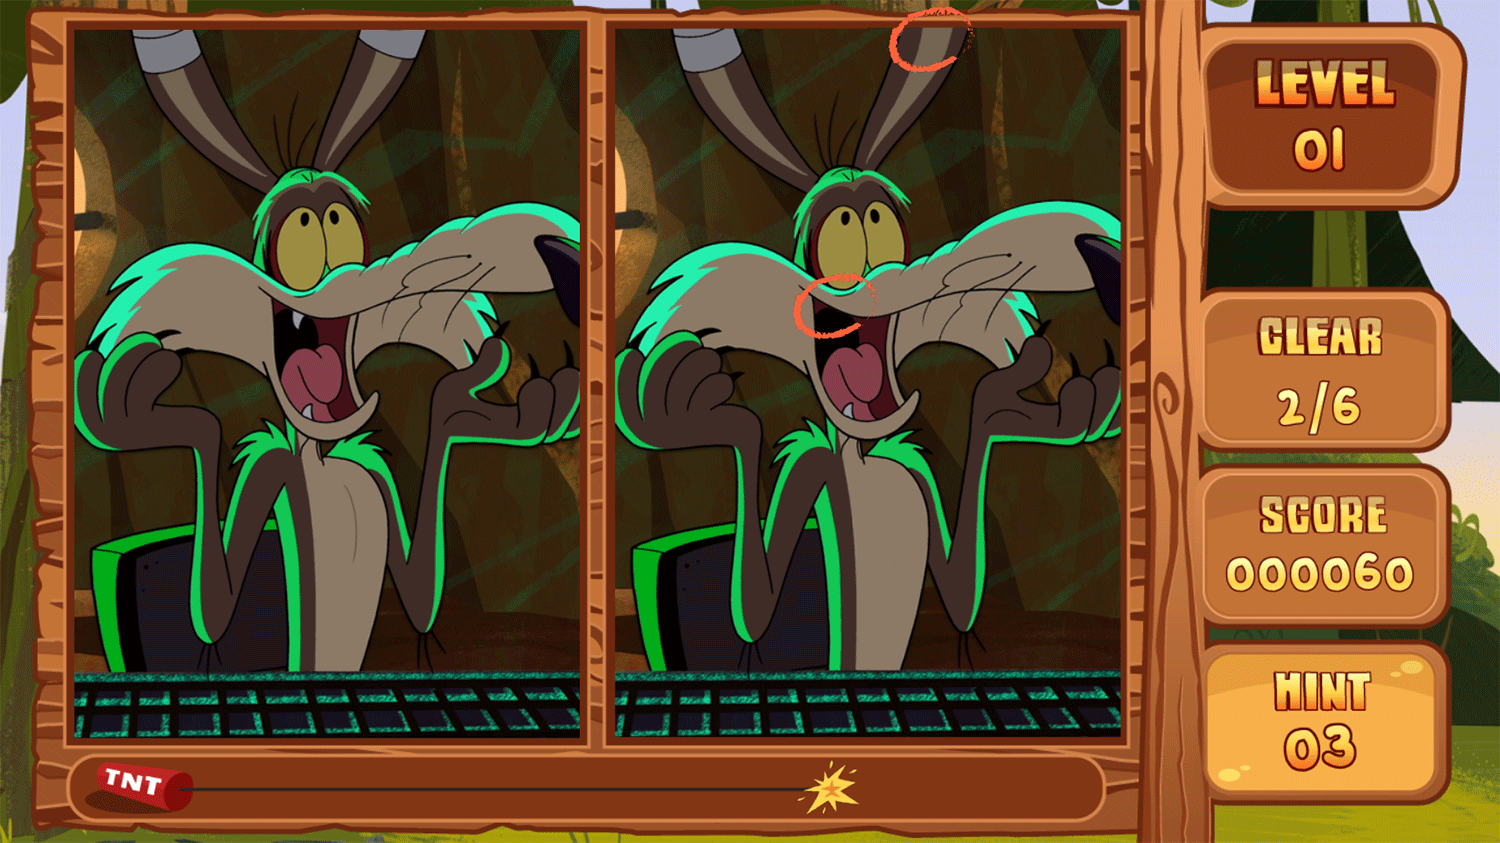 Bugs Bunny Spot the Difference Game Screenshot.